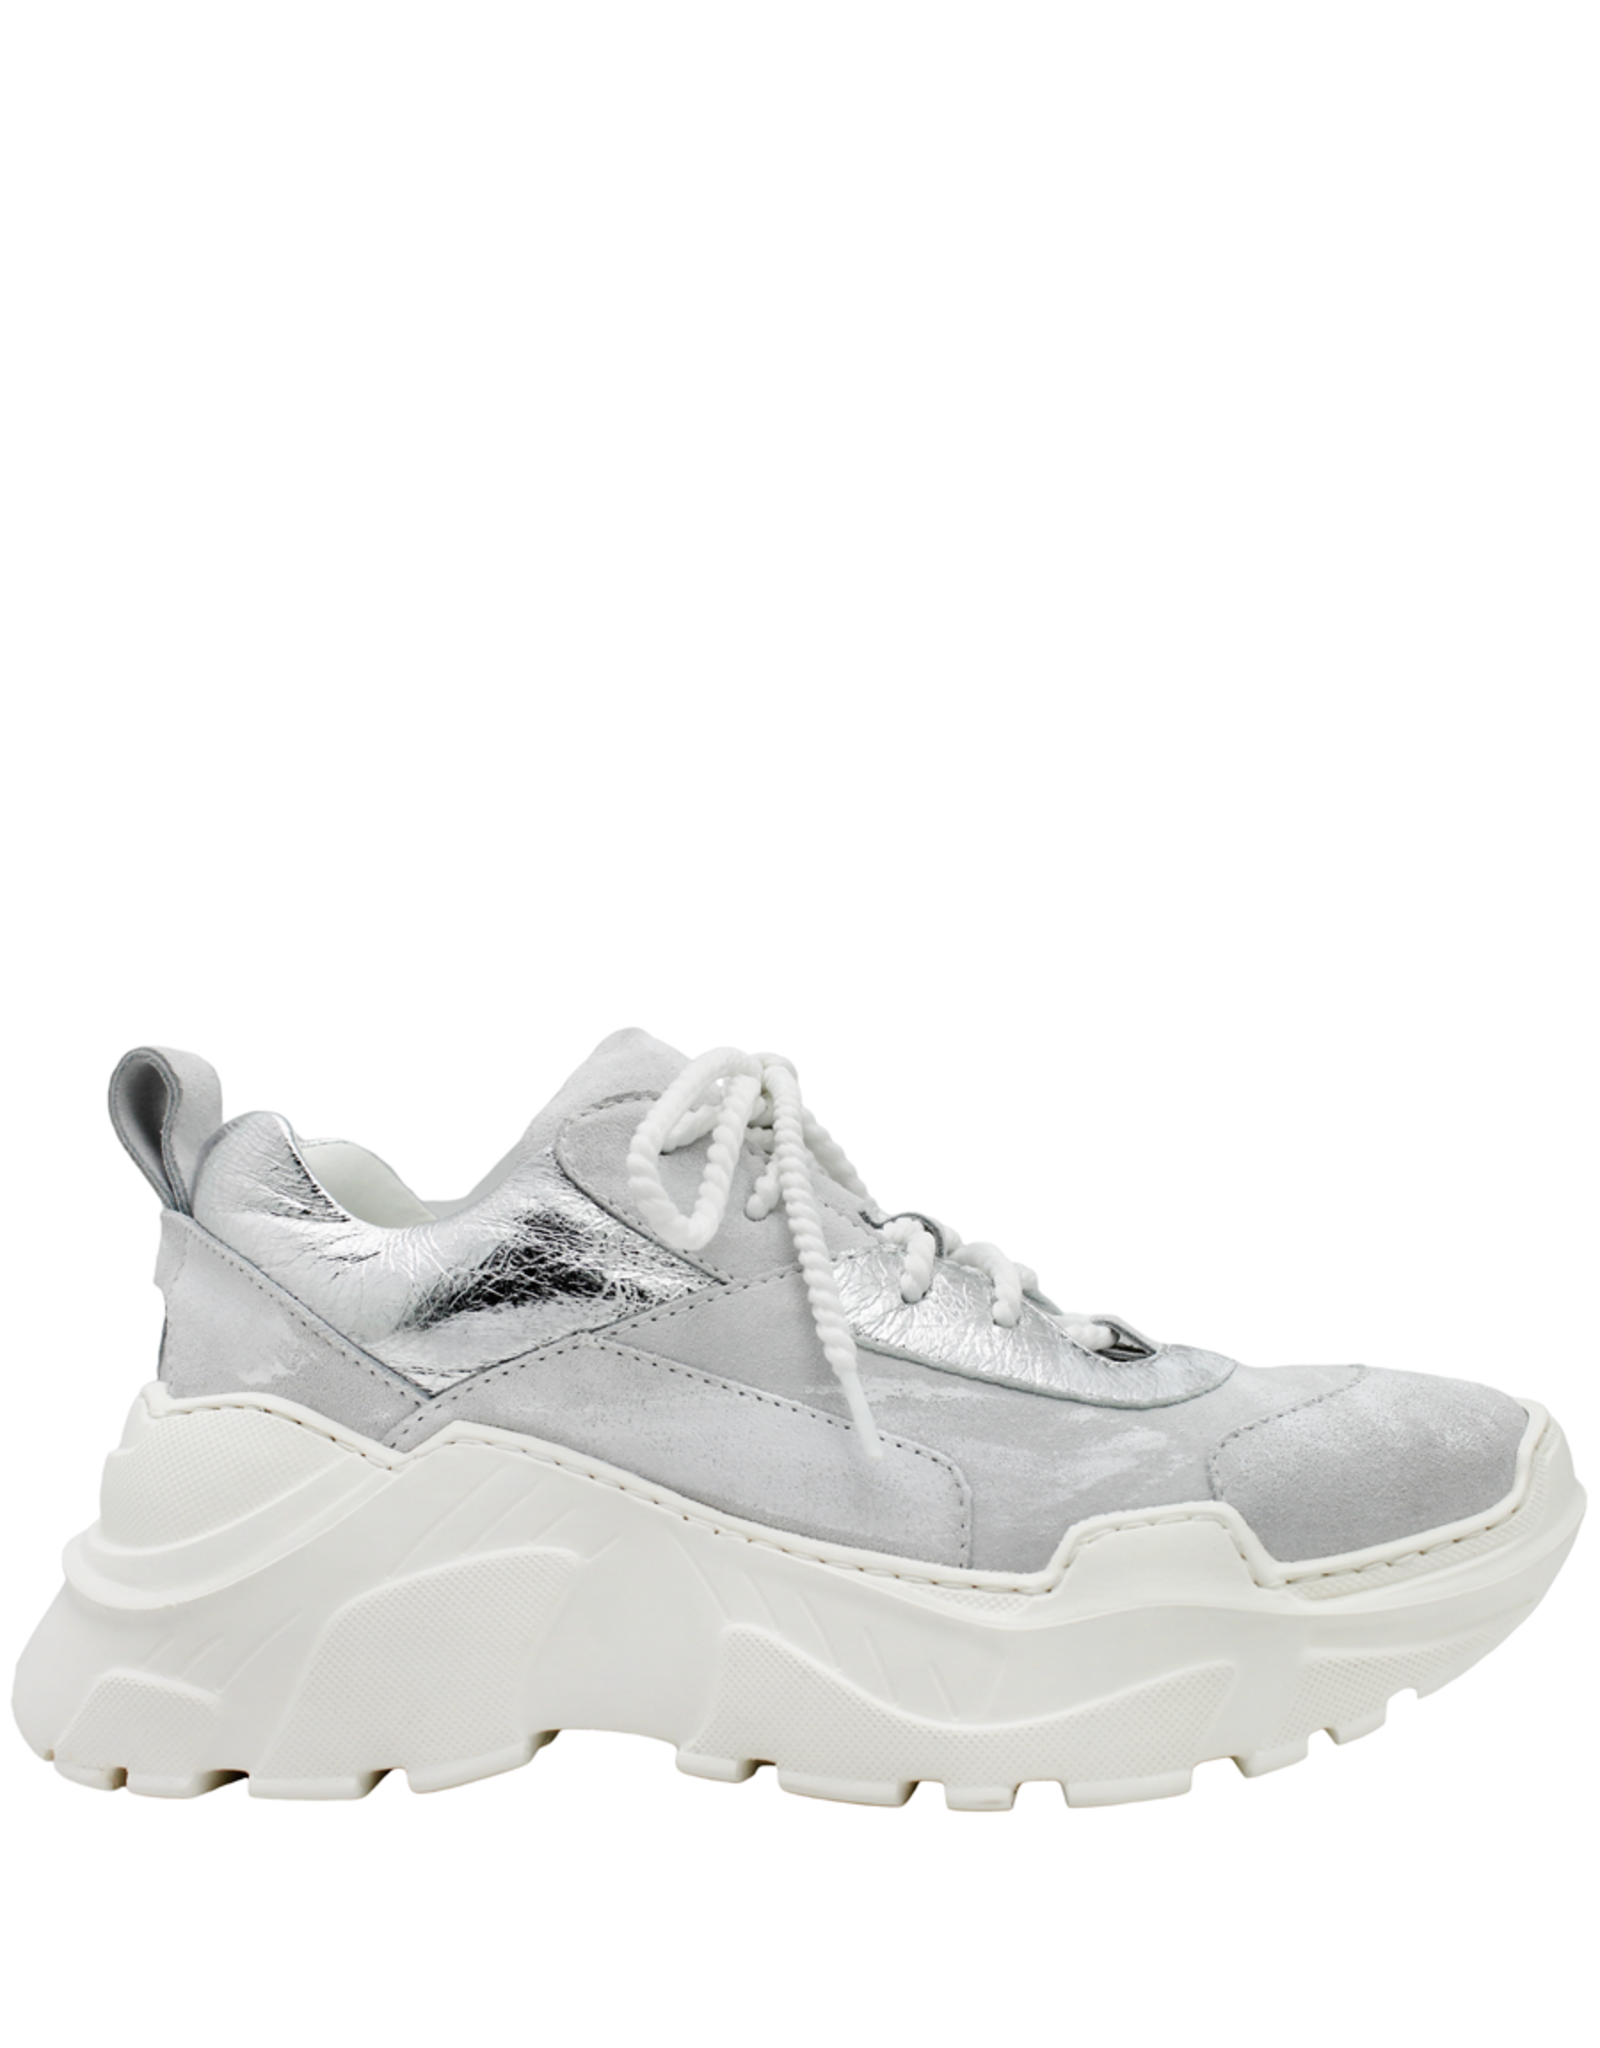 Now Now Cloud Lace-Up Sneaker Pati